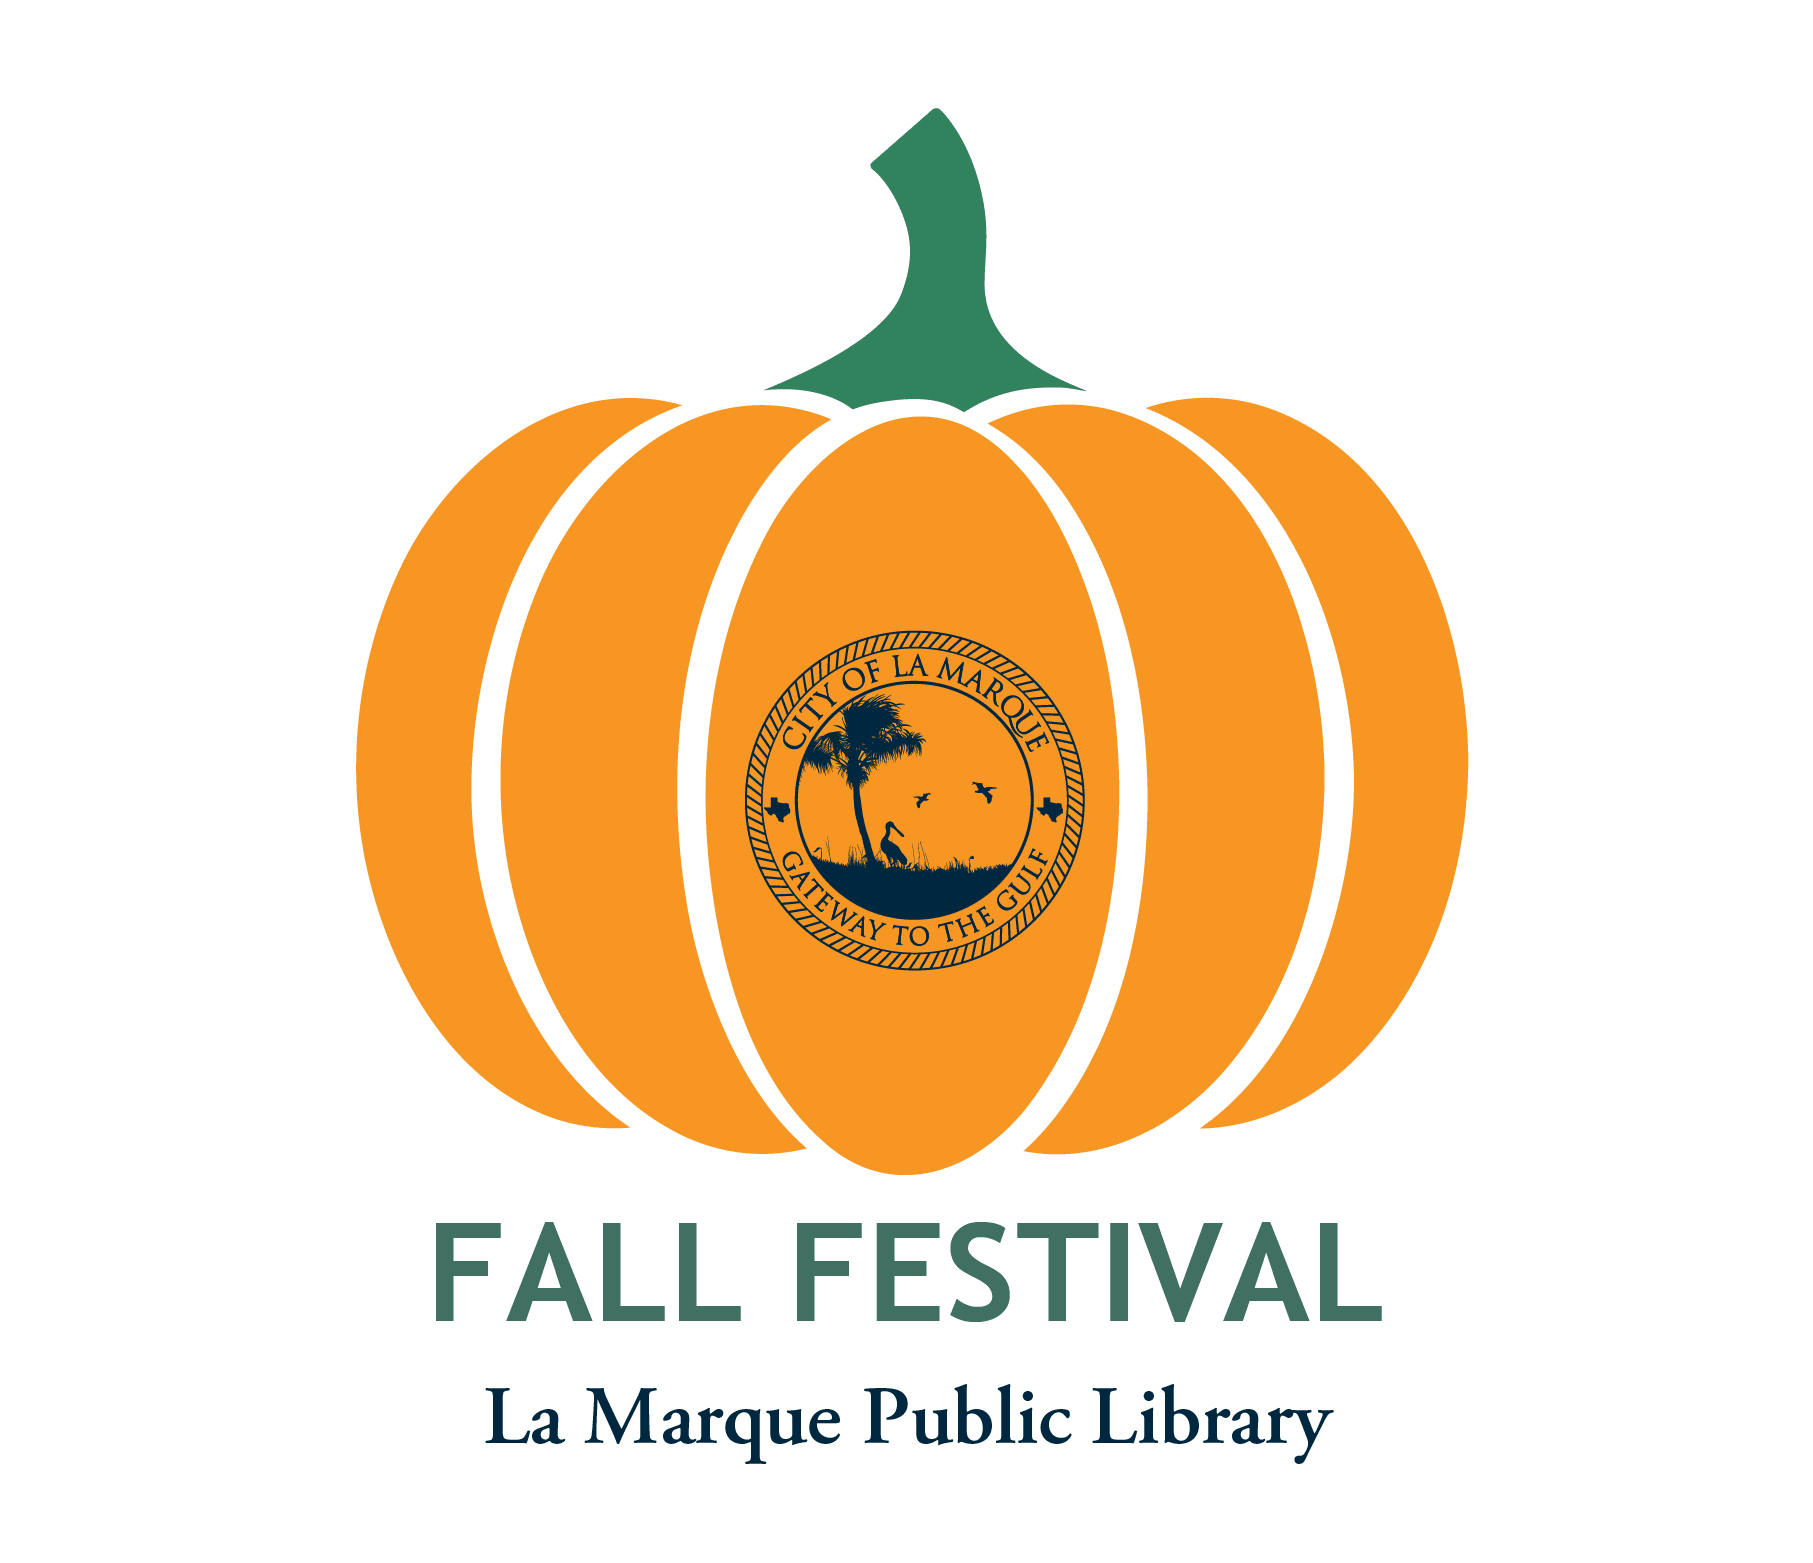 Fall Festival 2020 graphic with pumpkin and city logo